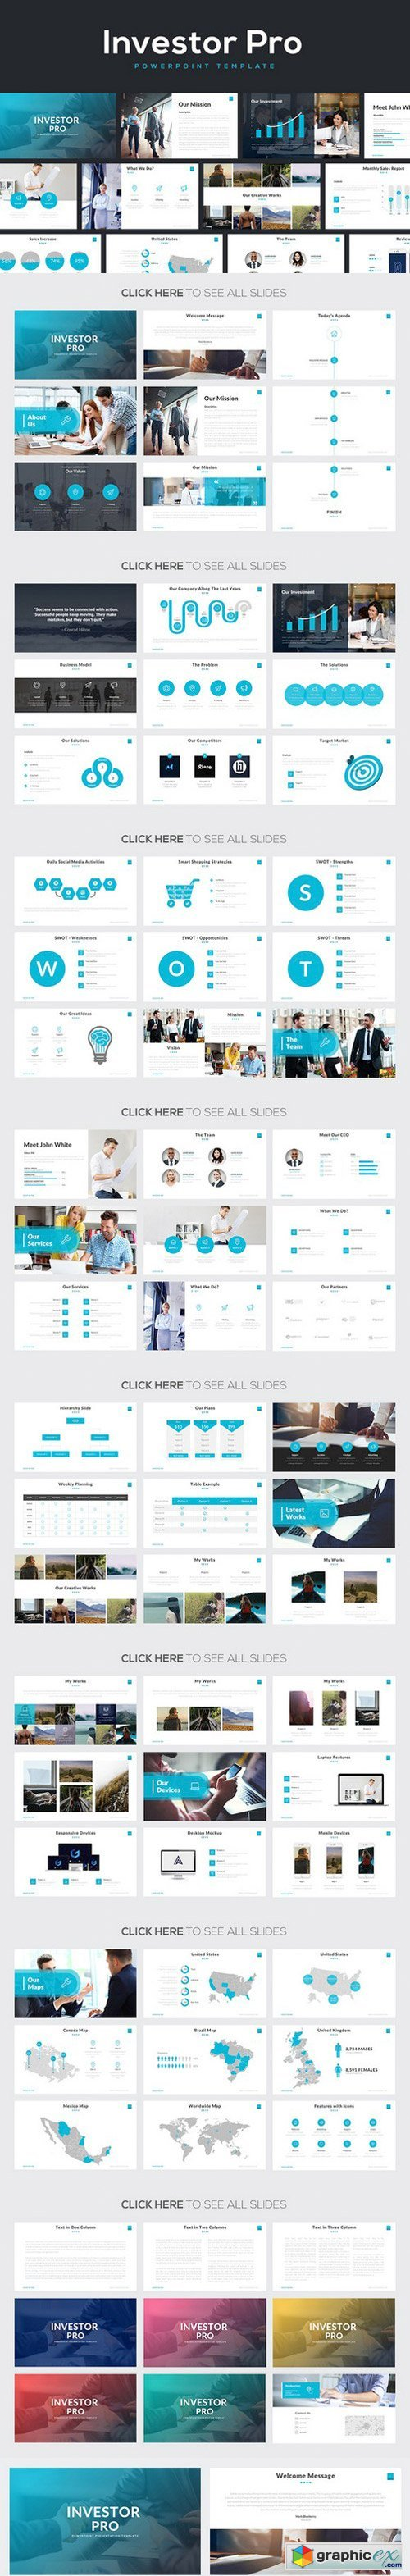 investor pro powerpoint template presentation pinterest